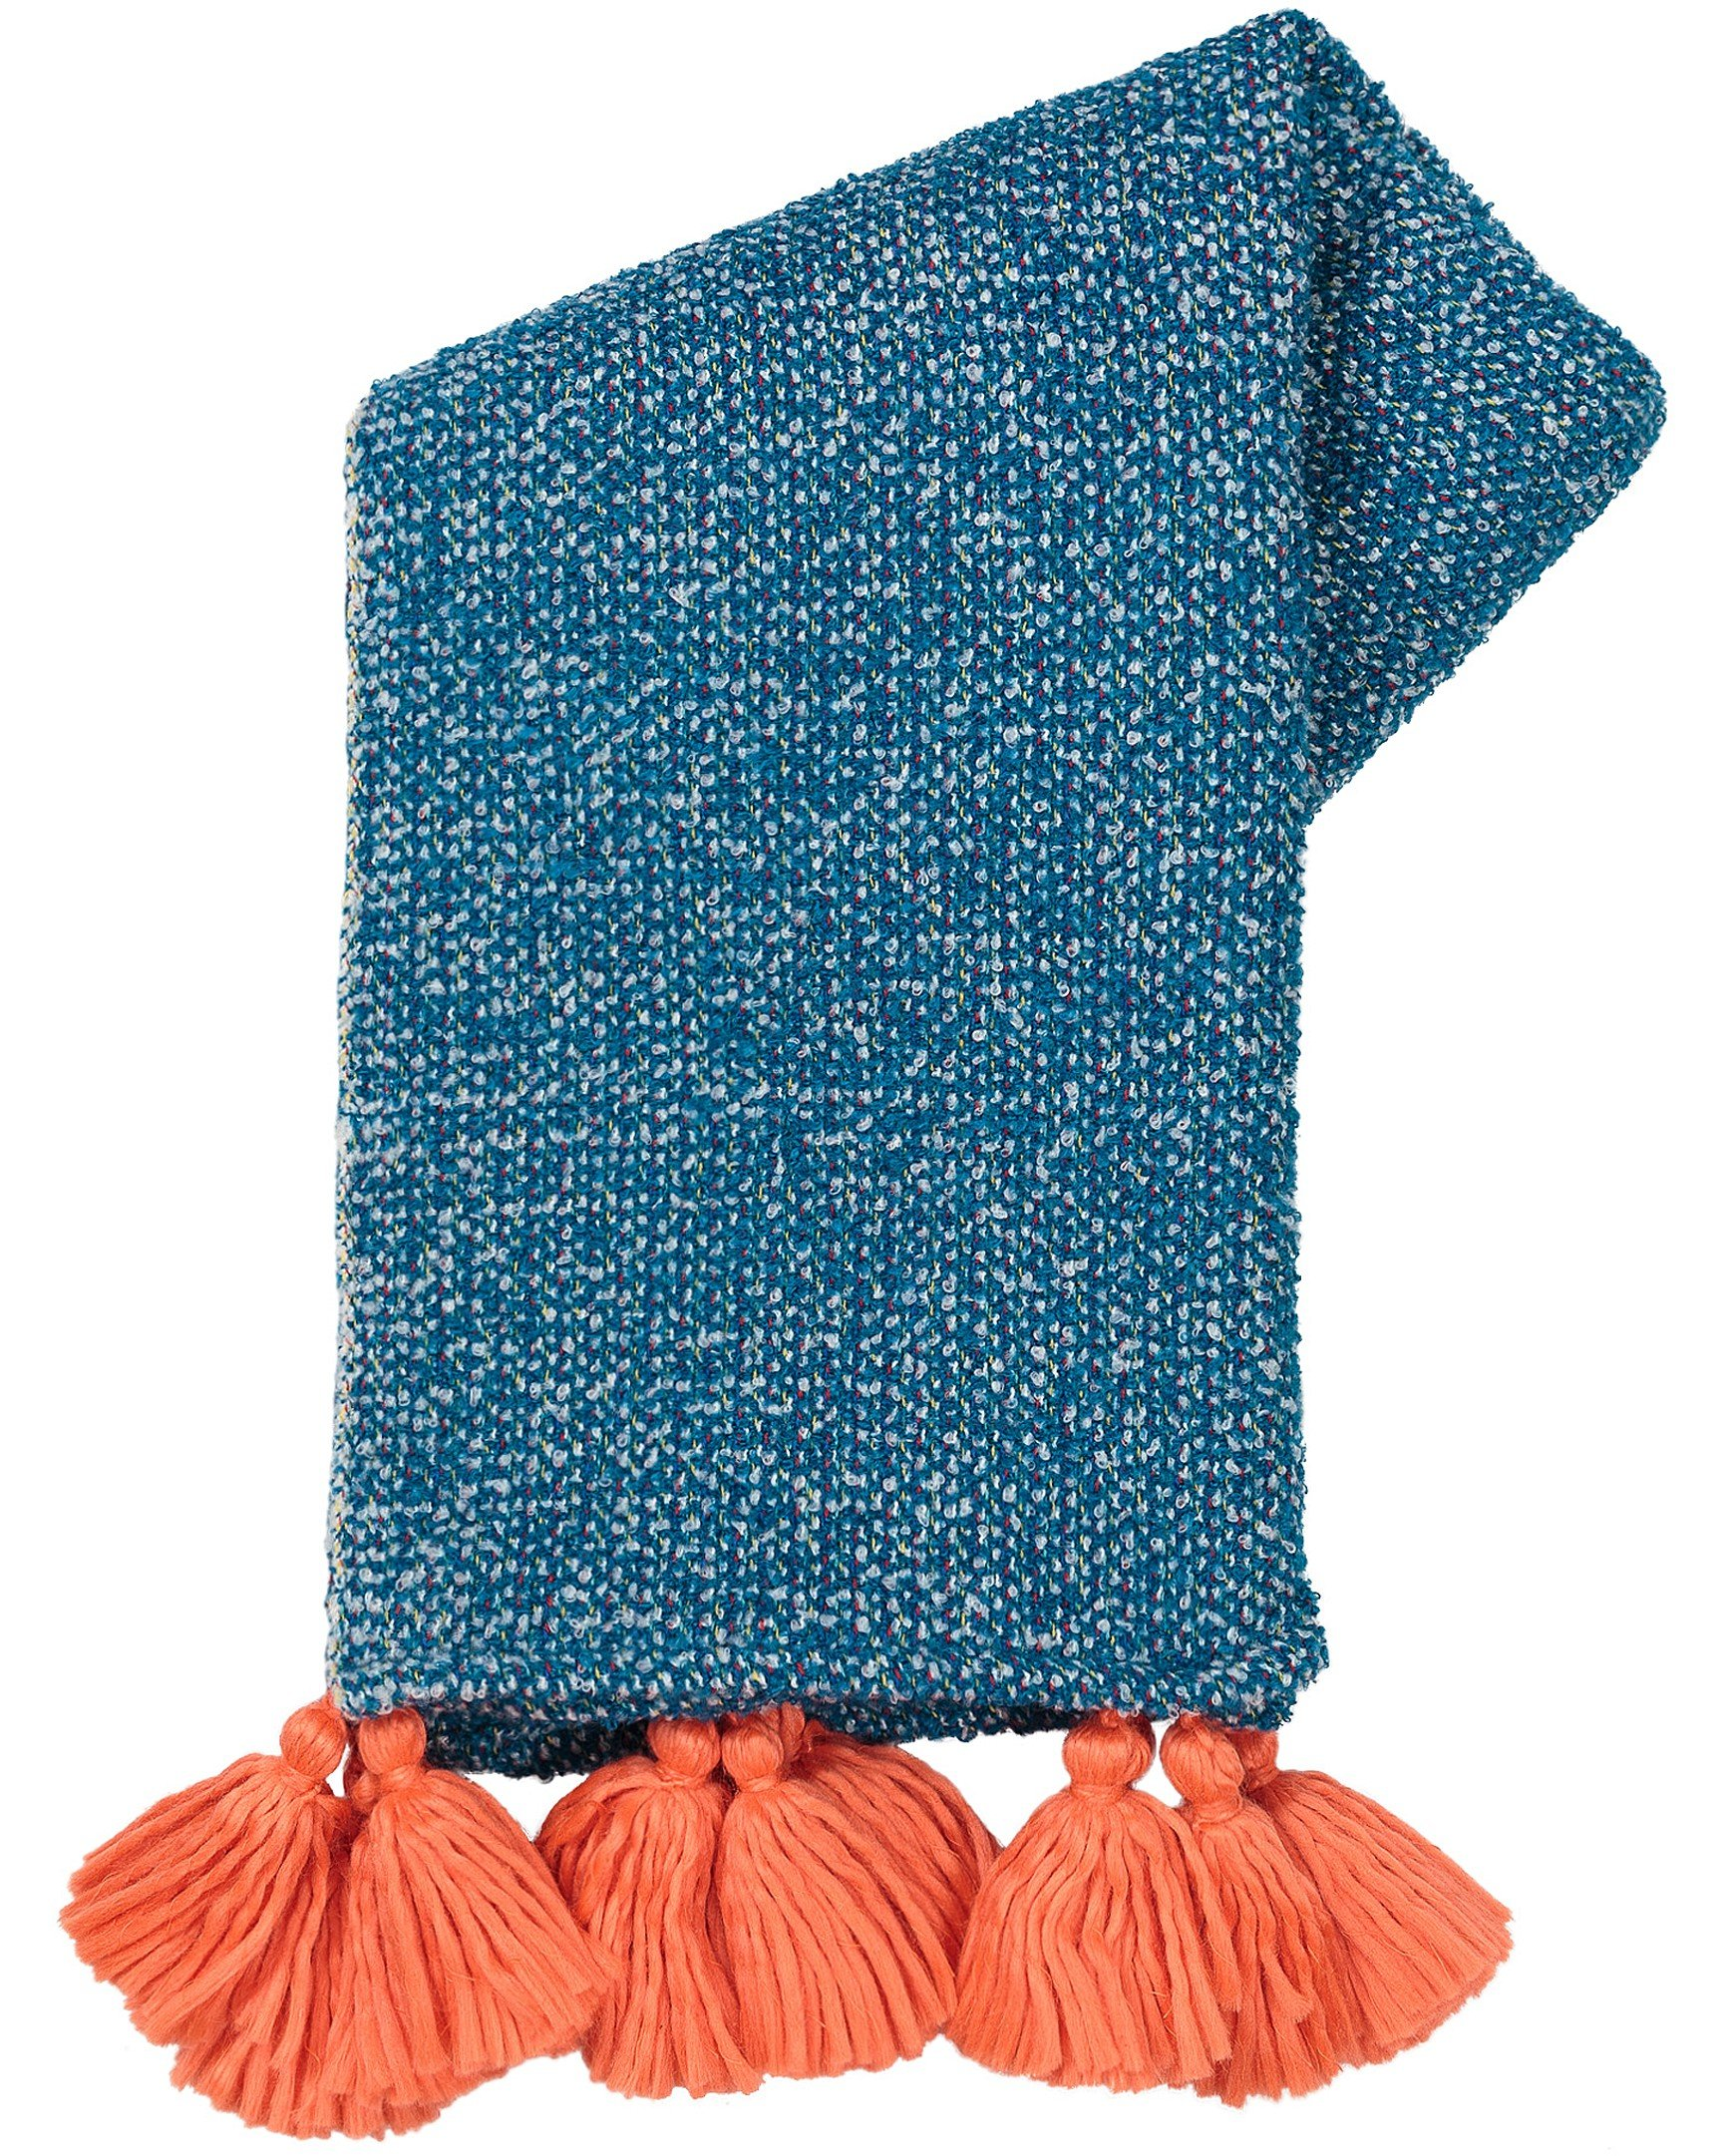 Boucle Blue Woven Throw